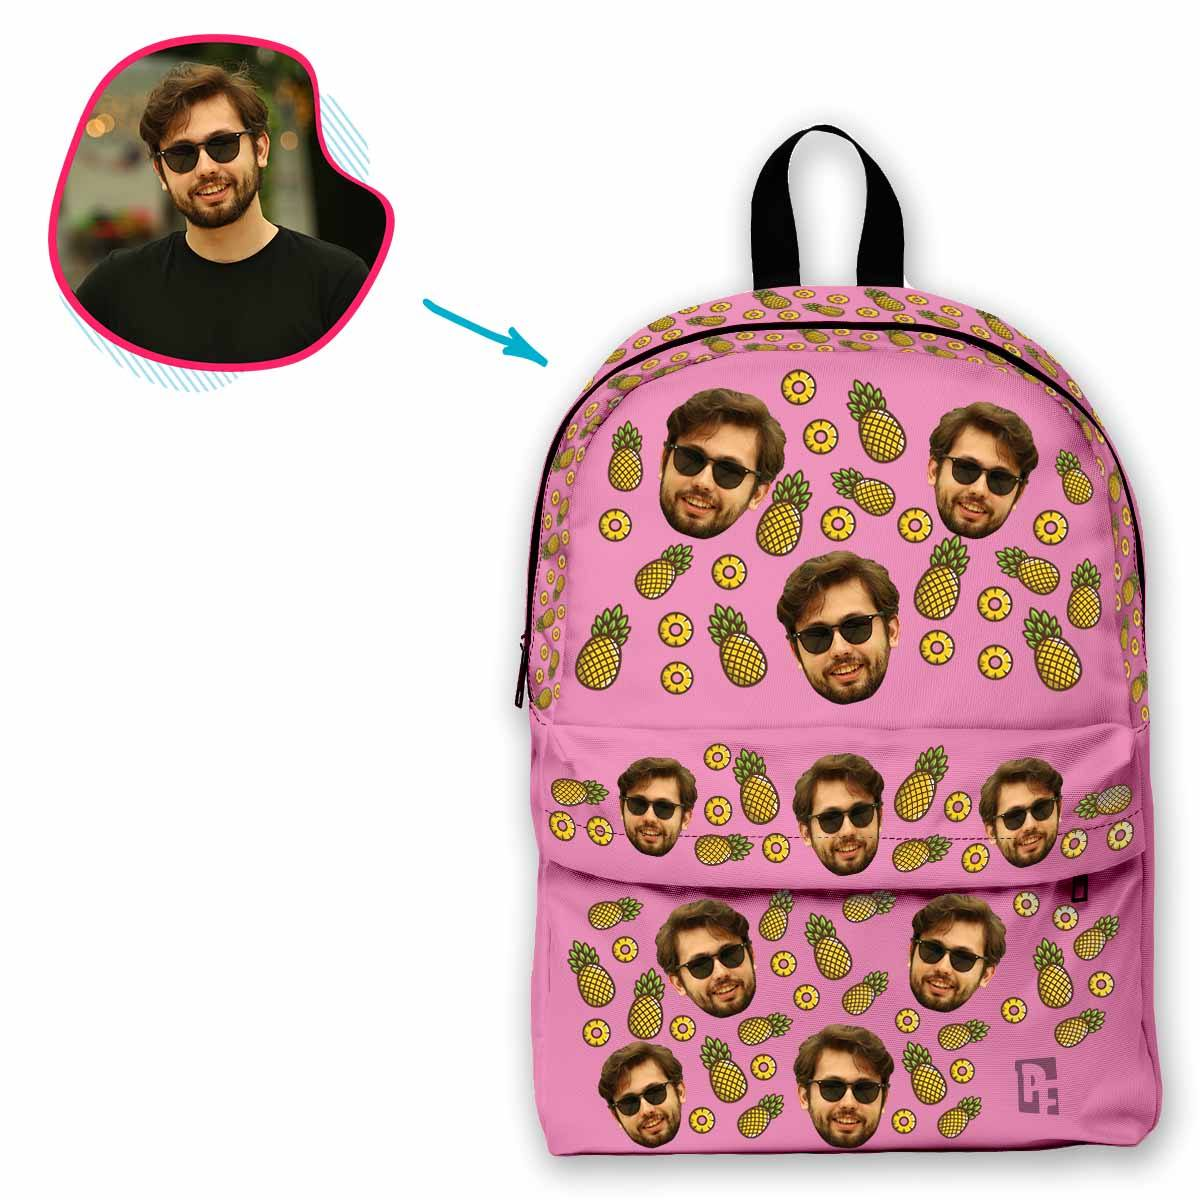 pink Fruits classic backpack personalized with photo of face printed on it